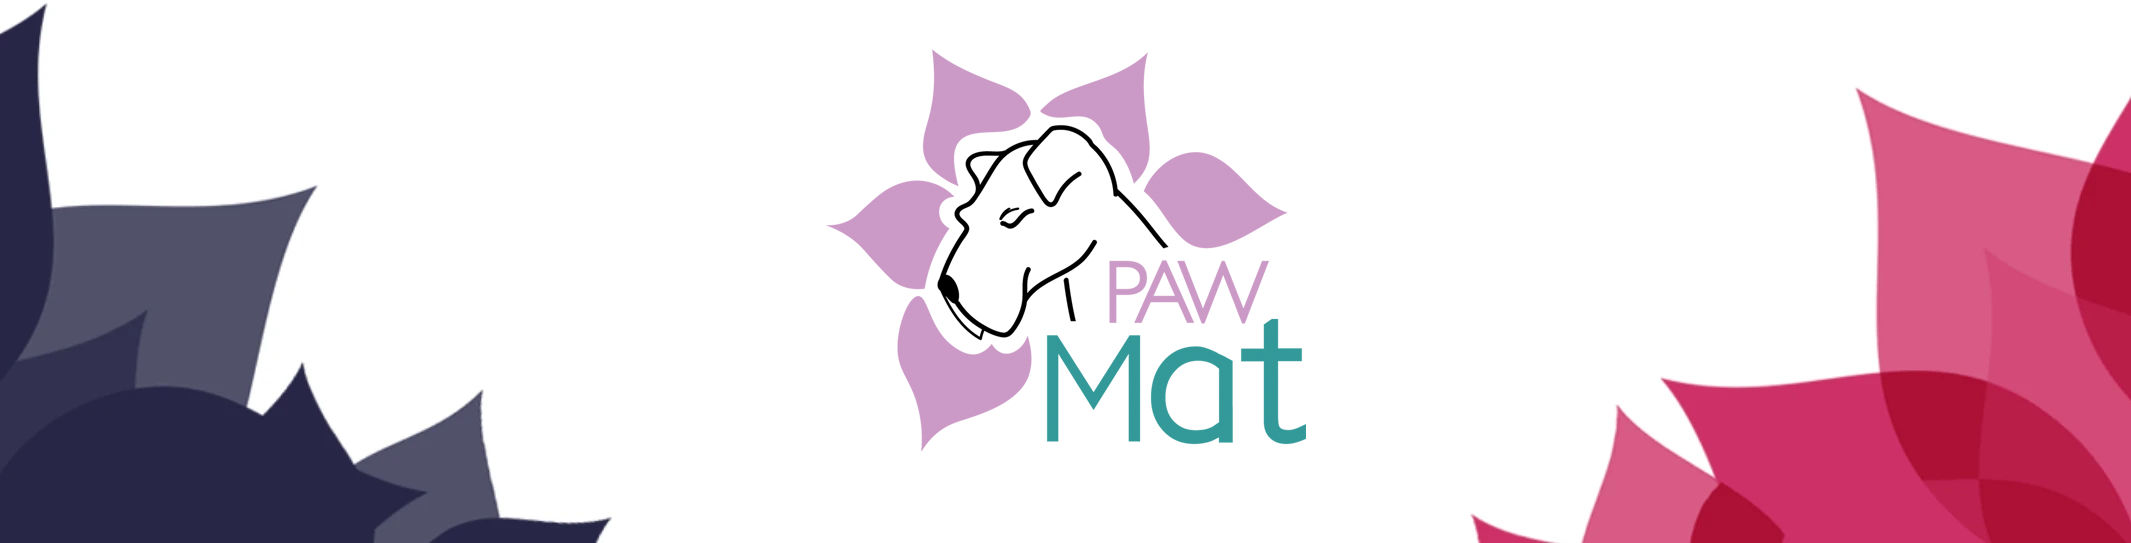 PawMat Logo with Flowers